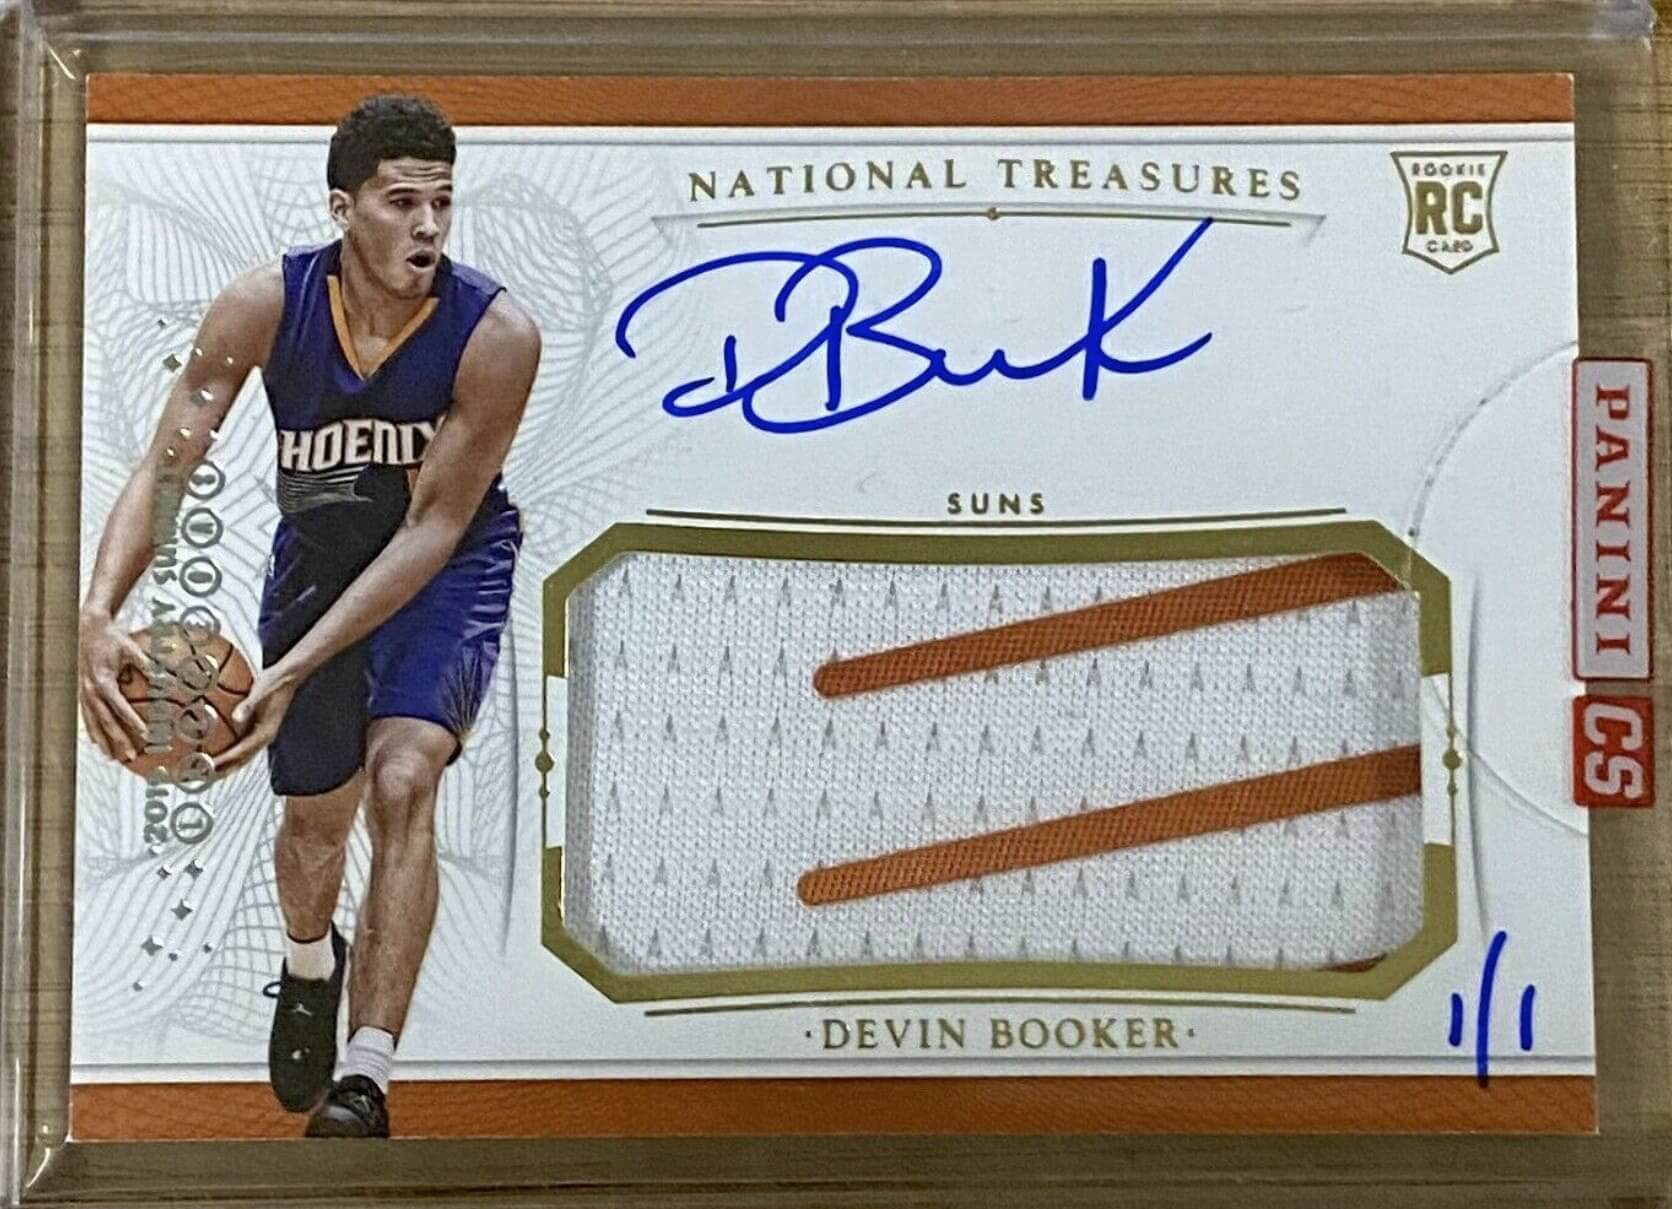 2015 National Treasures Devin Booker RC Auto Patch #113